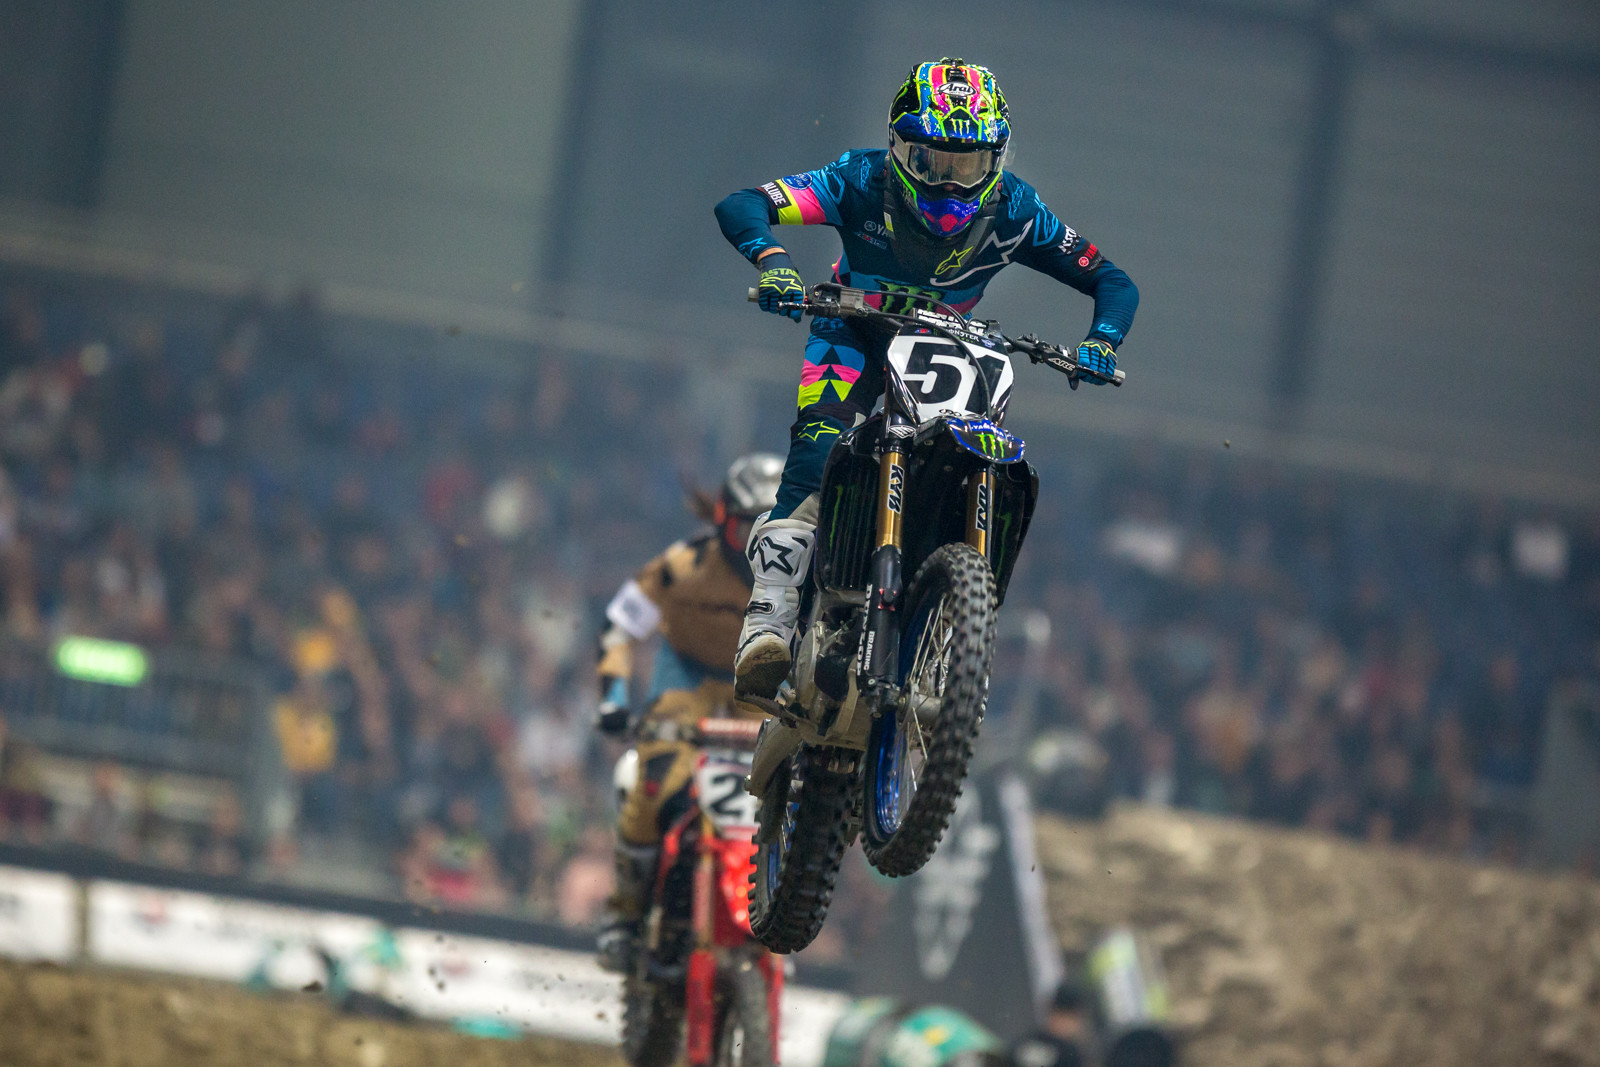 Justin Barcia has looked strong in the offseason races he has attended, and he's looking good here, too.